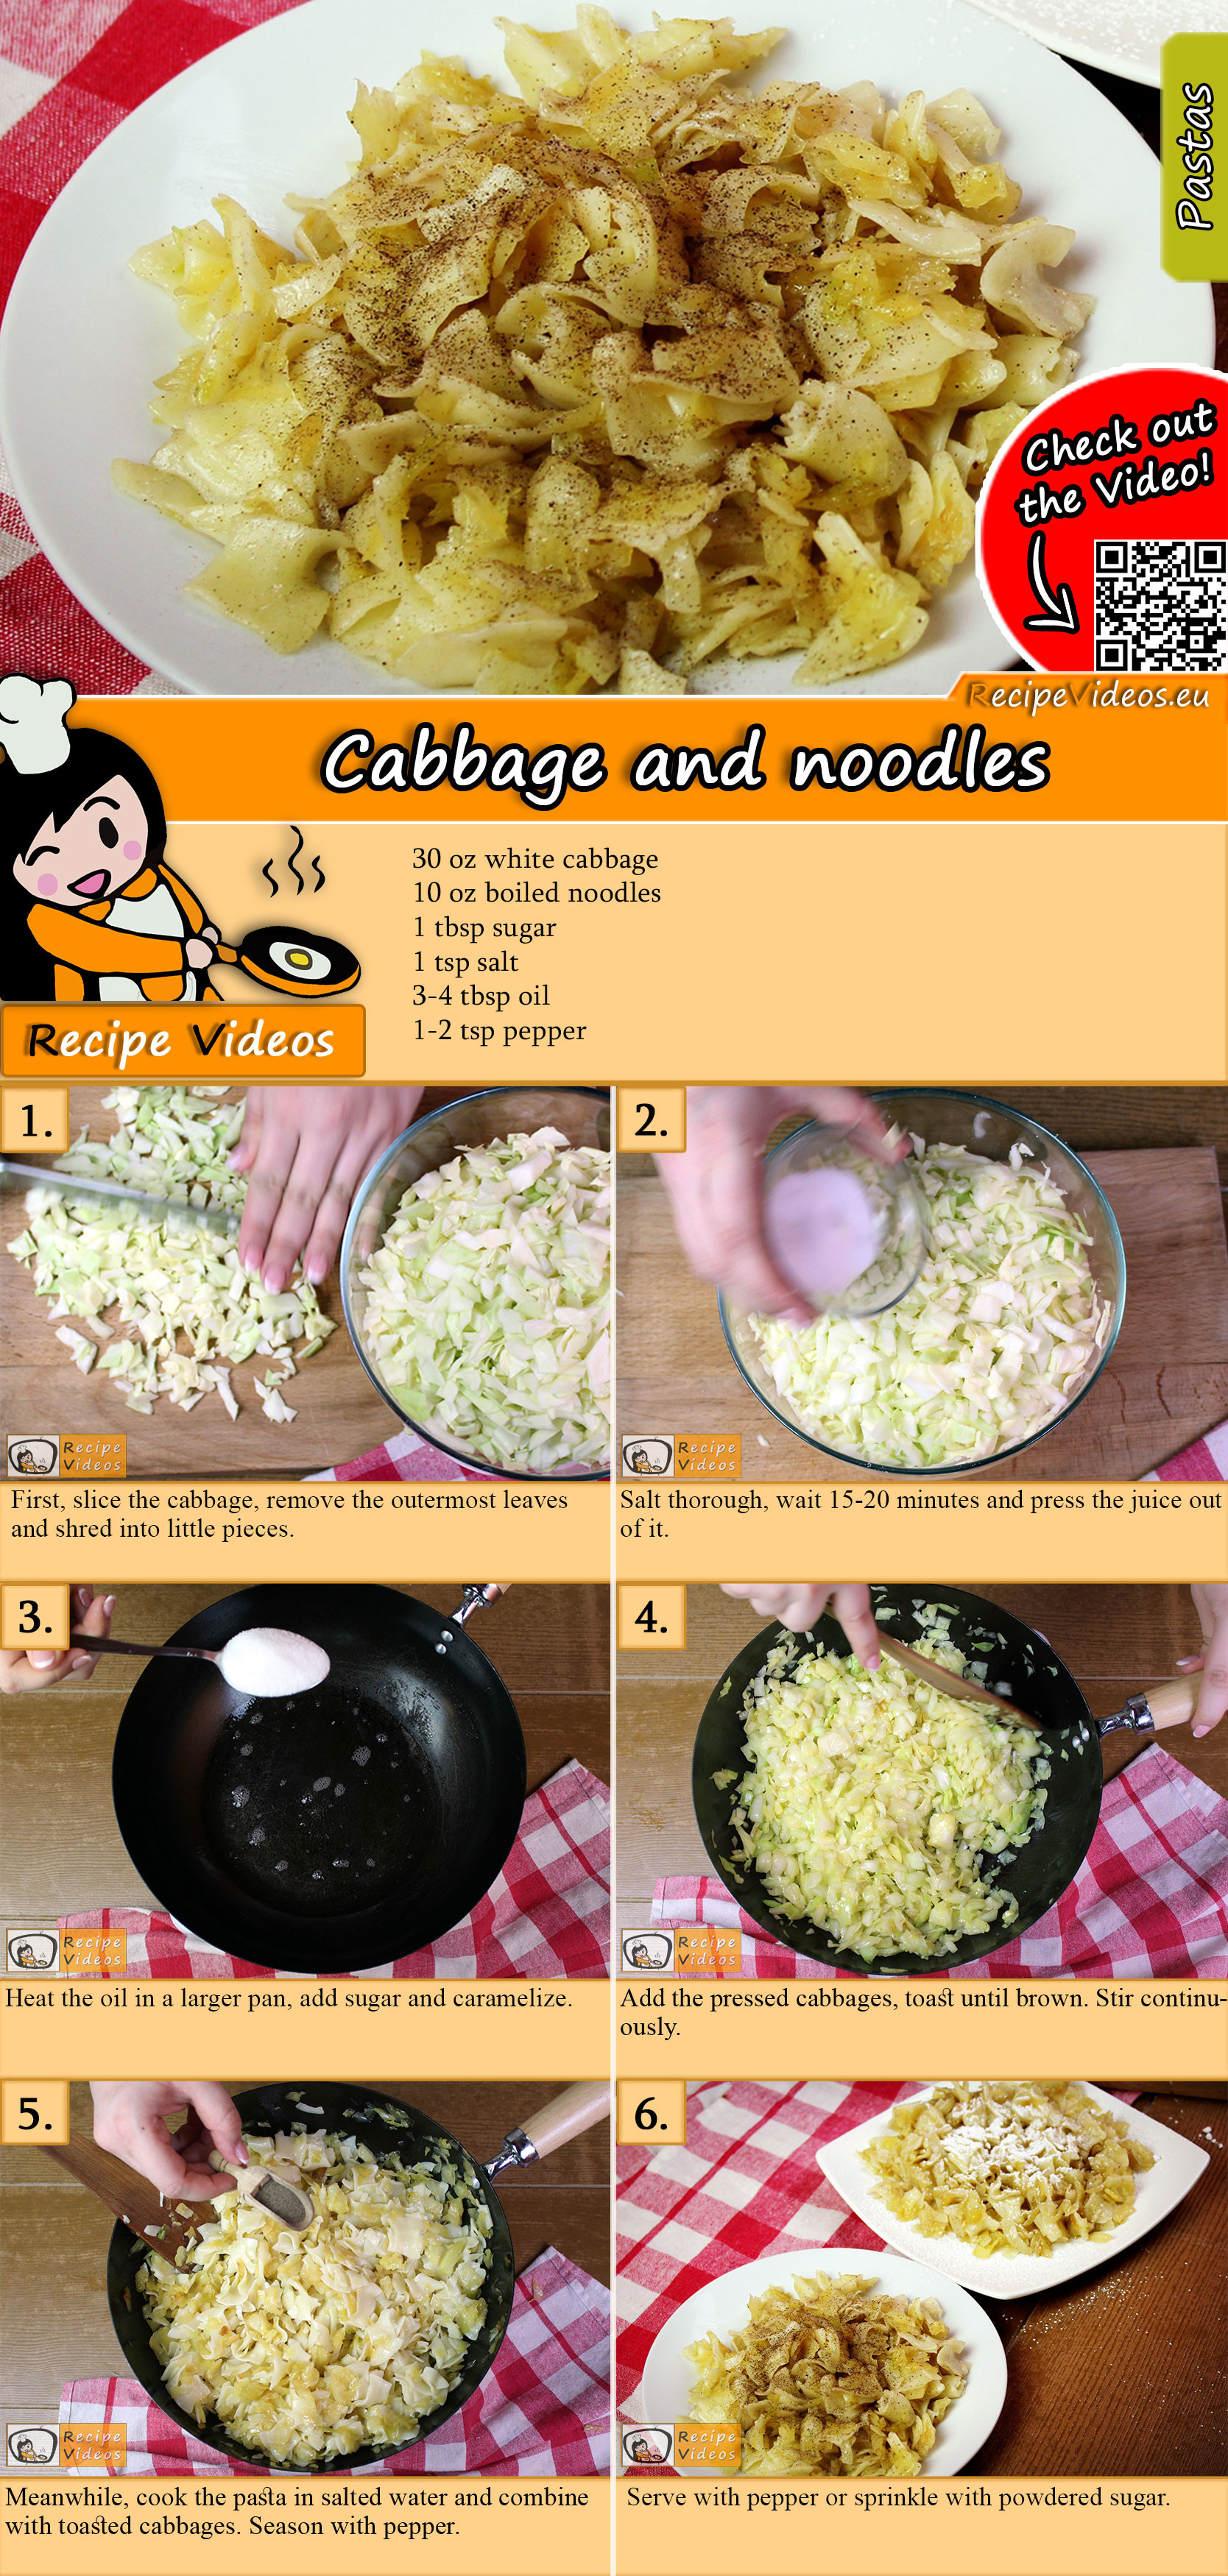 Simple cabbage and noodles recipe with video